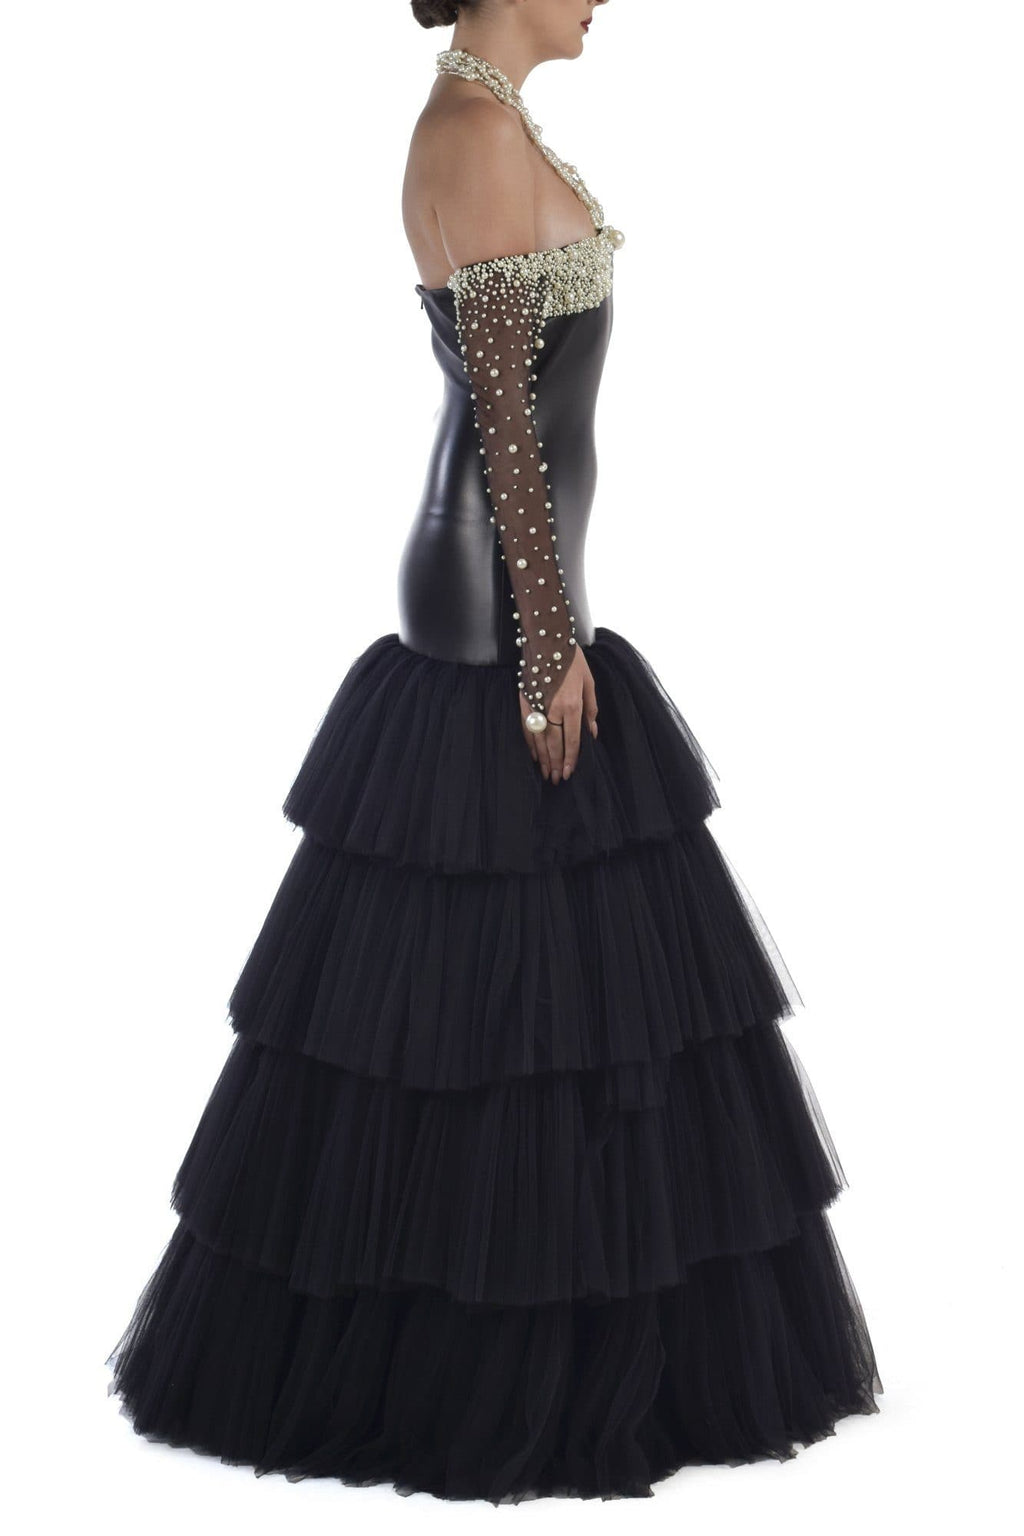 PVC Punk Style Tulle Dress With Pearl Sleeves - BYTRIBUTE